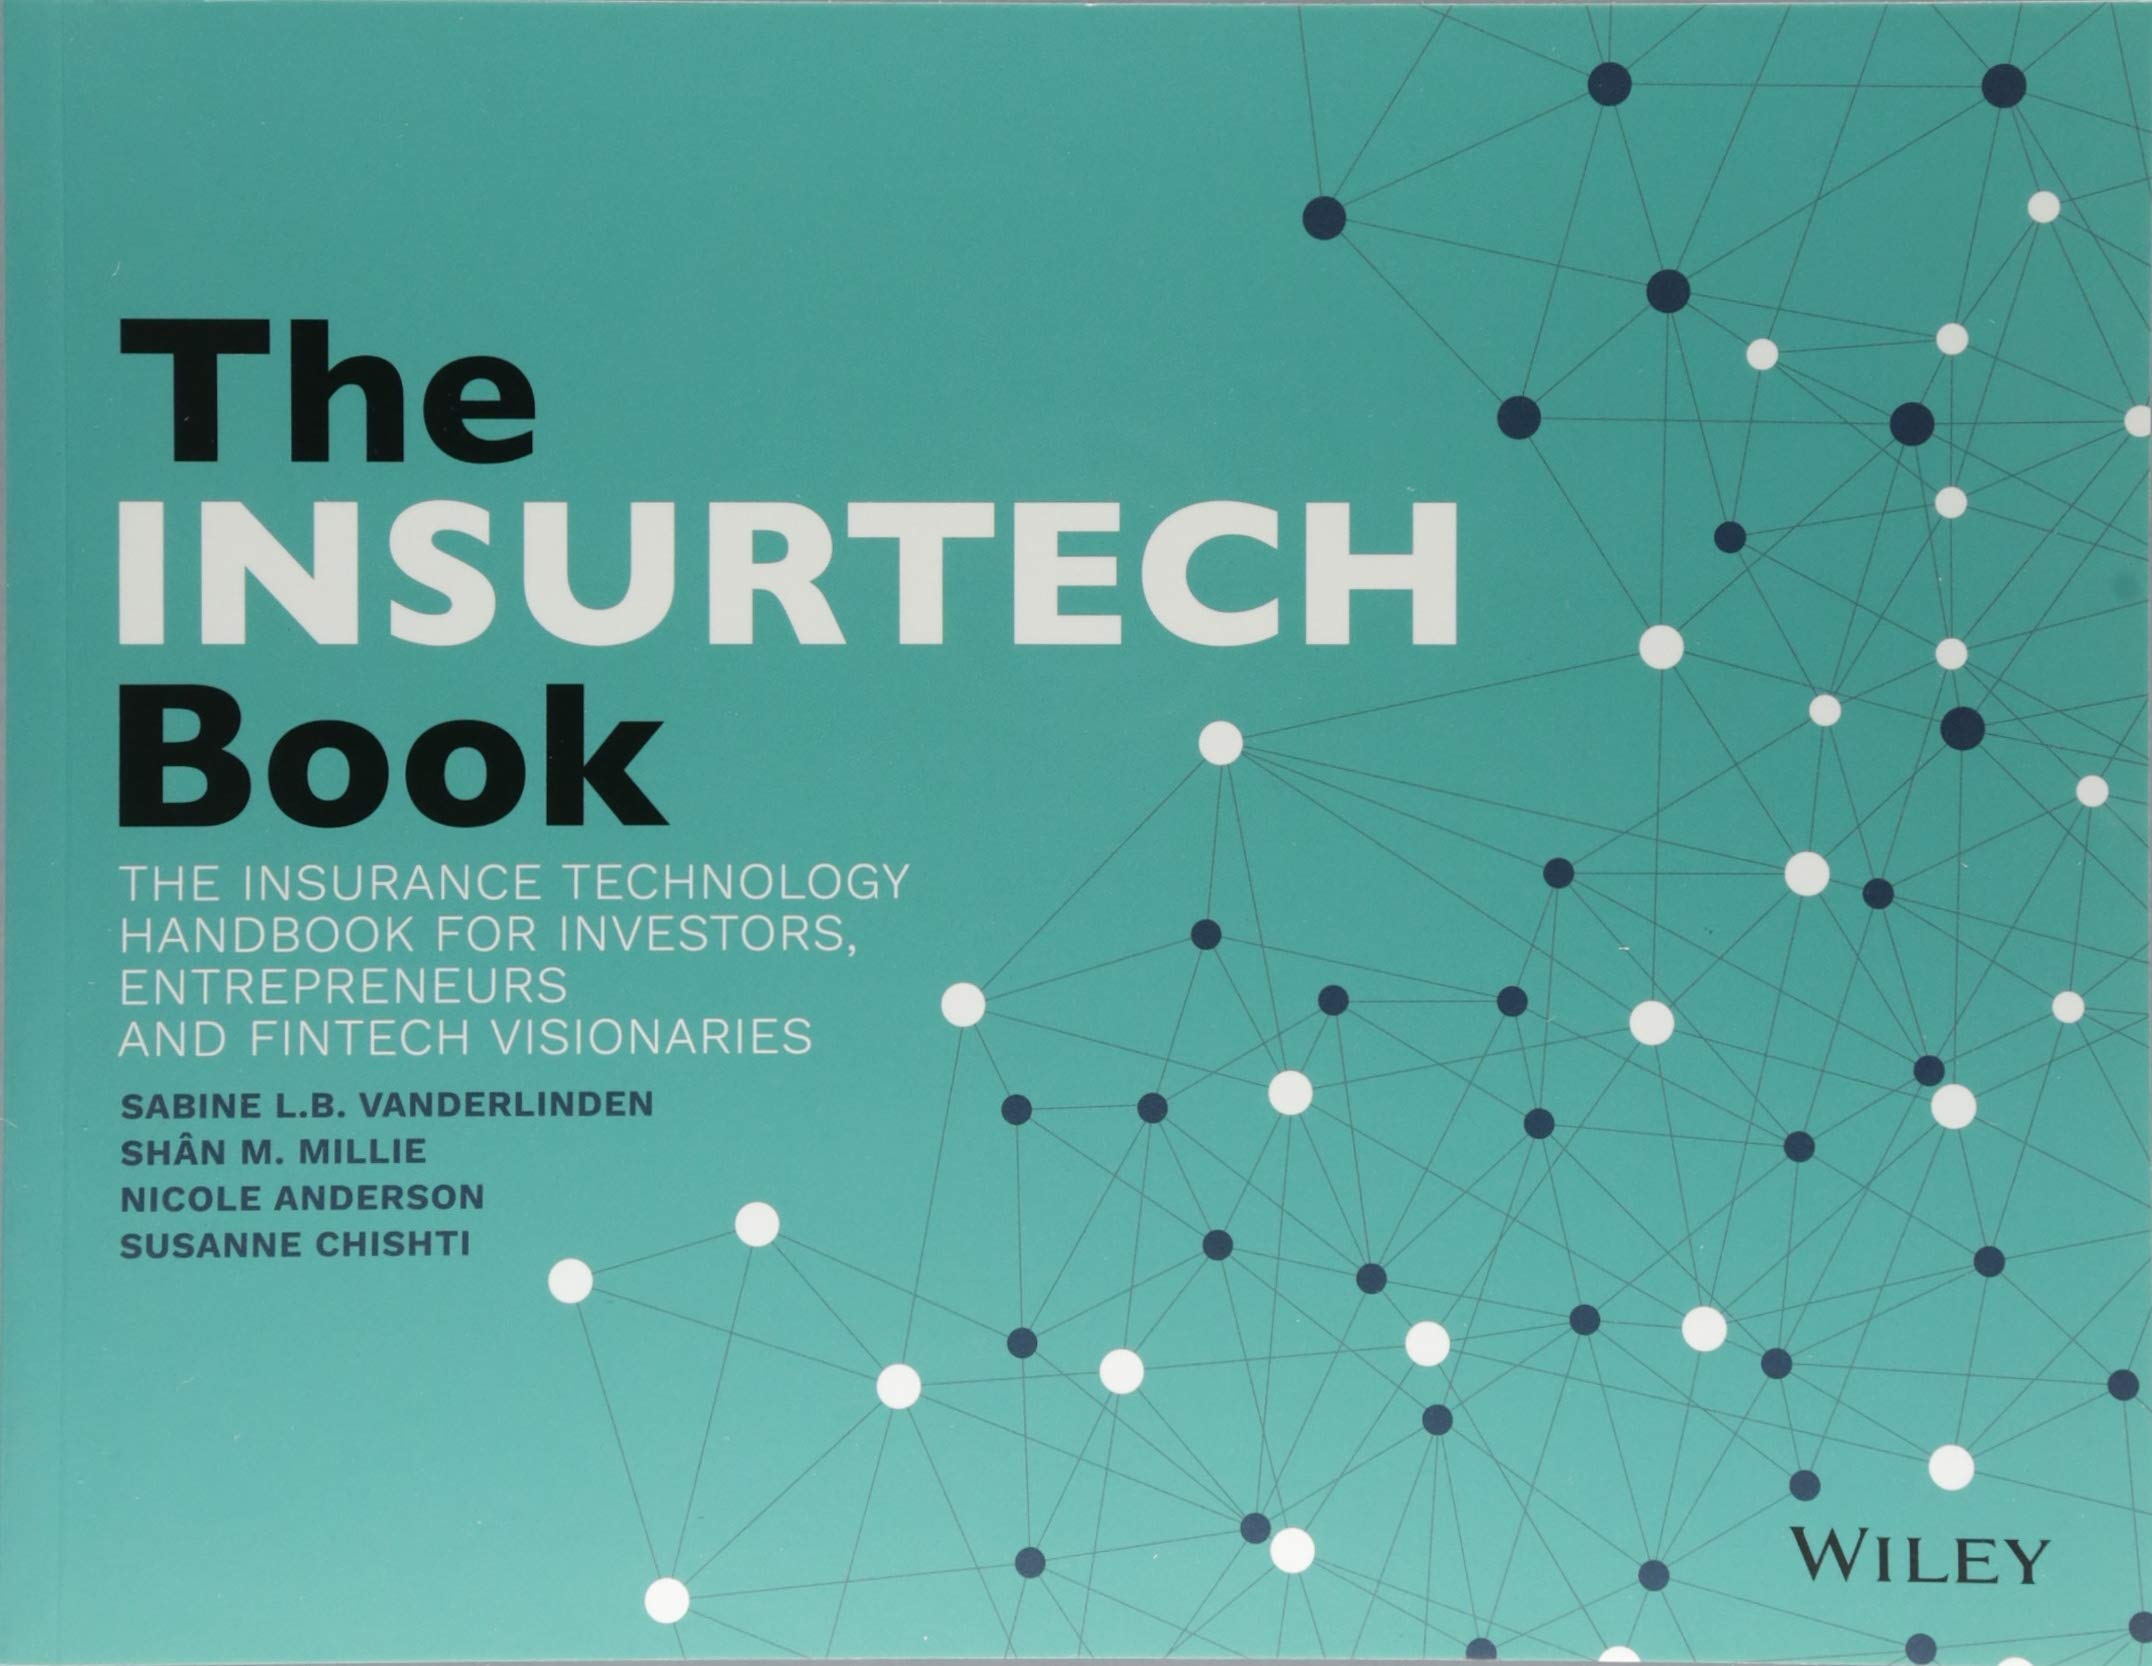 The INSURTECH Book: The Insurance Technology Handbook for Investors,  Entrepreneurs and FinTech Visionaries: Amazon.co.uk: Sabine L.B  VanderLinden, ...